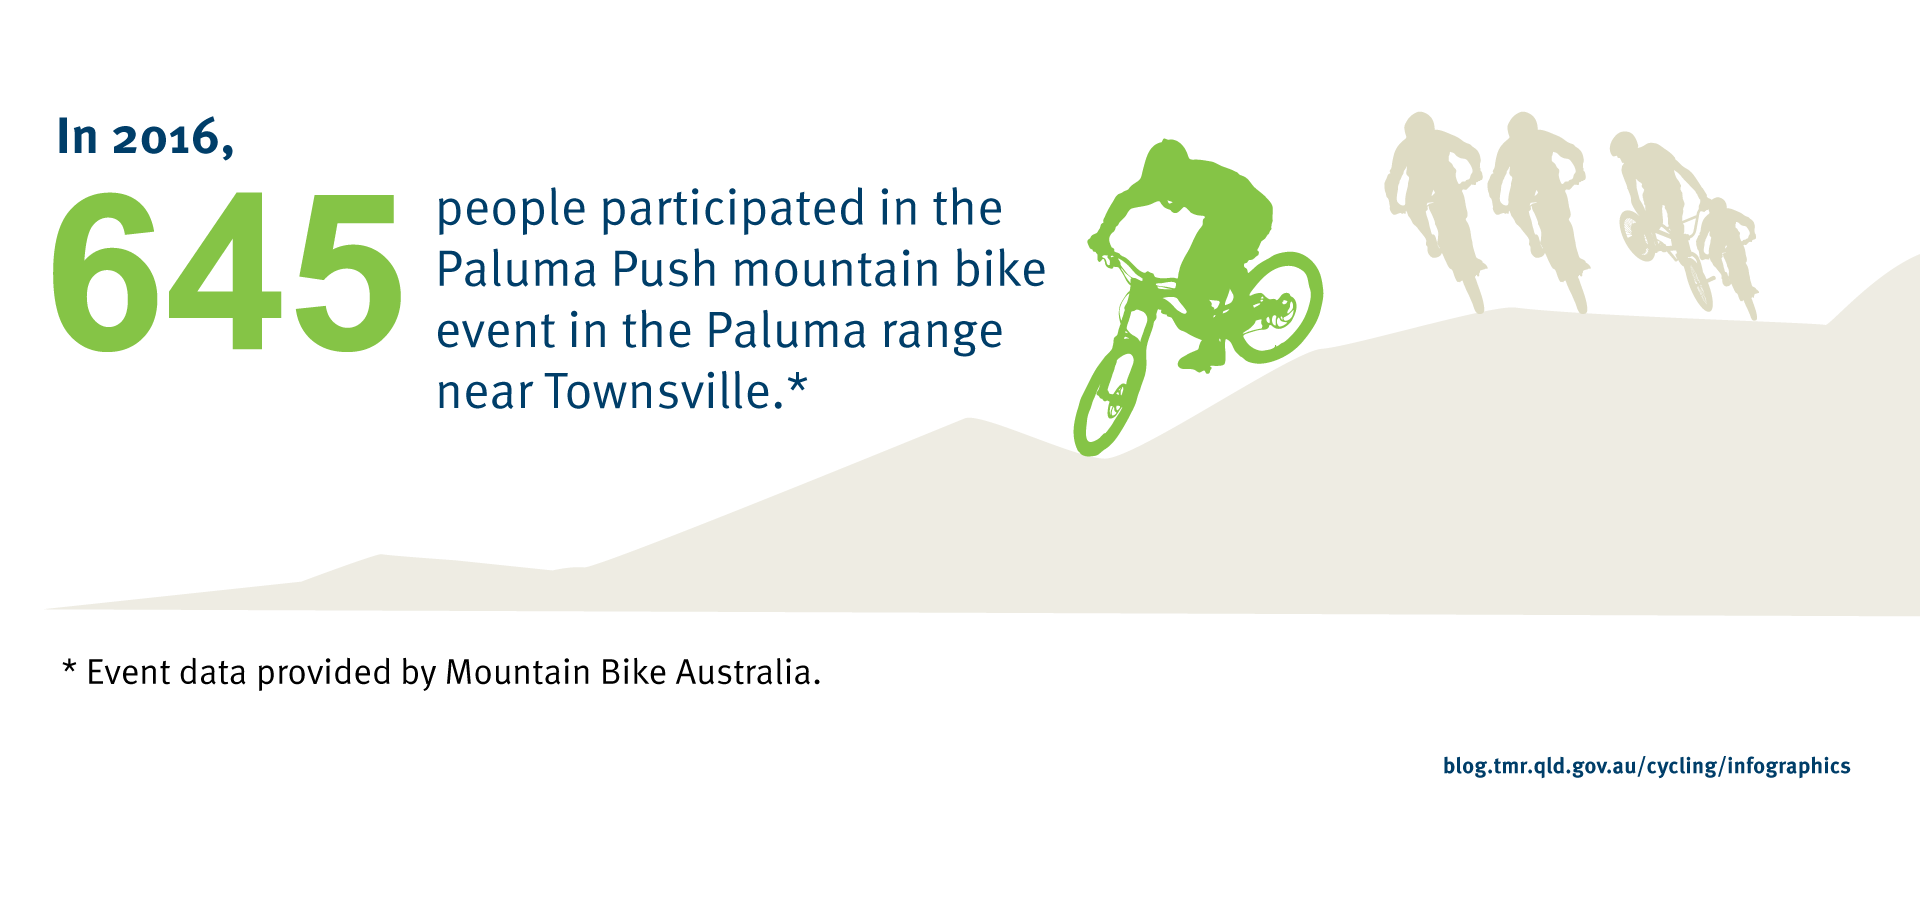 In 2016, 645 people participated in the Paluma Push mountain bike event in the Paluma range near Townsville (<i>Event data provided by Mountain Bike Australia</i>).